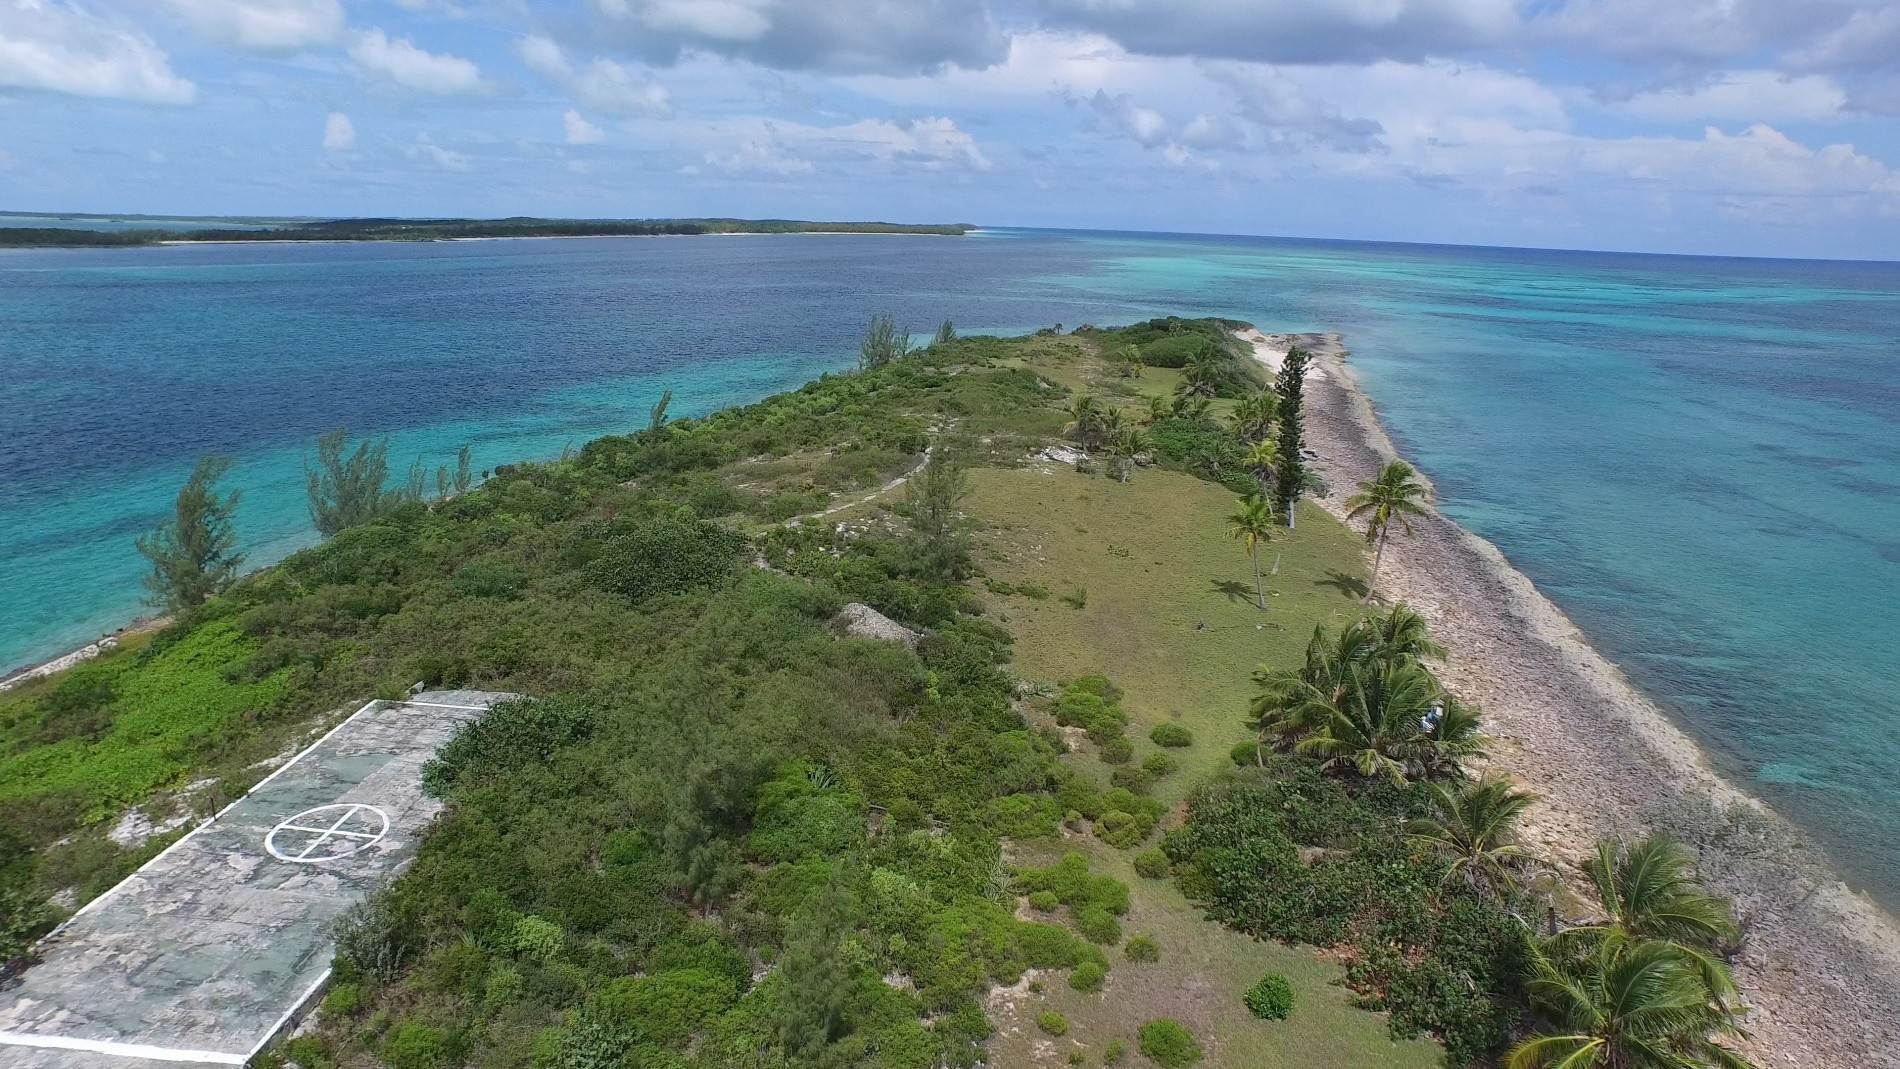 16. Private Islands for Sale at Pierre Island, A Perfect Private Retreat Island Near Harbour Island - MLS 40806 Harbour Island, Eleuthera, Bahamas